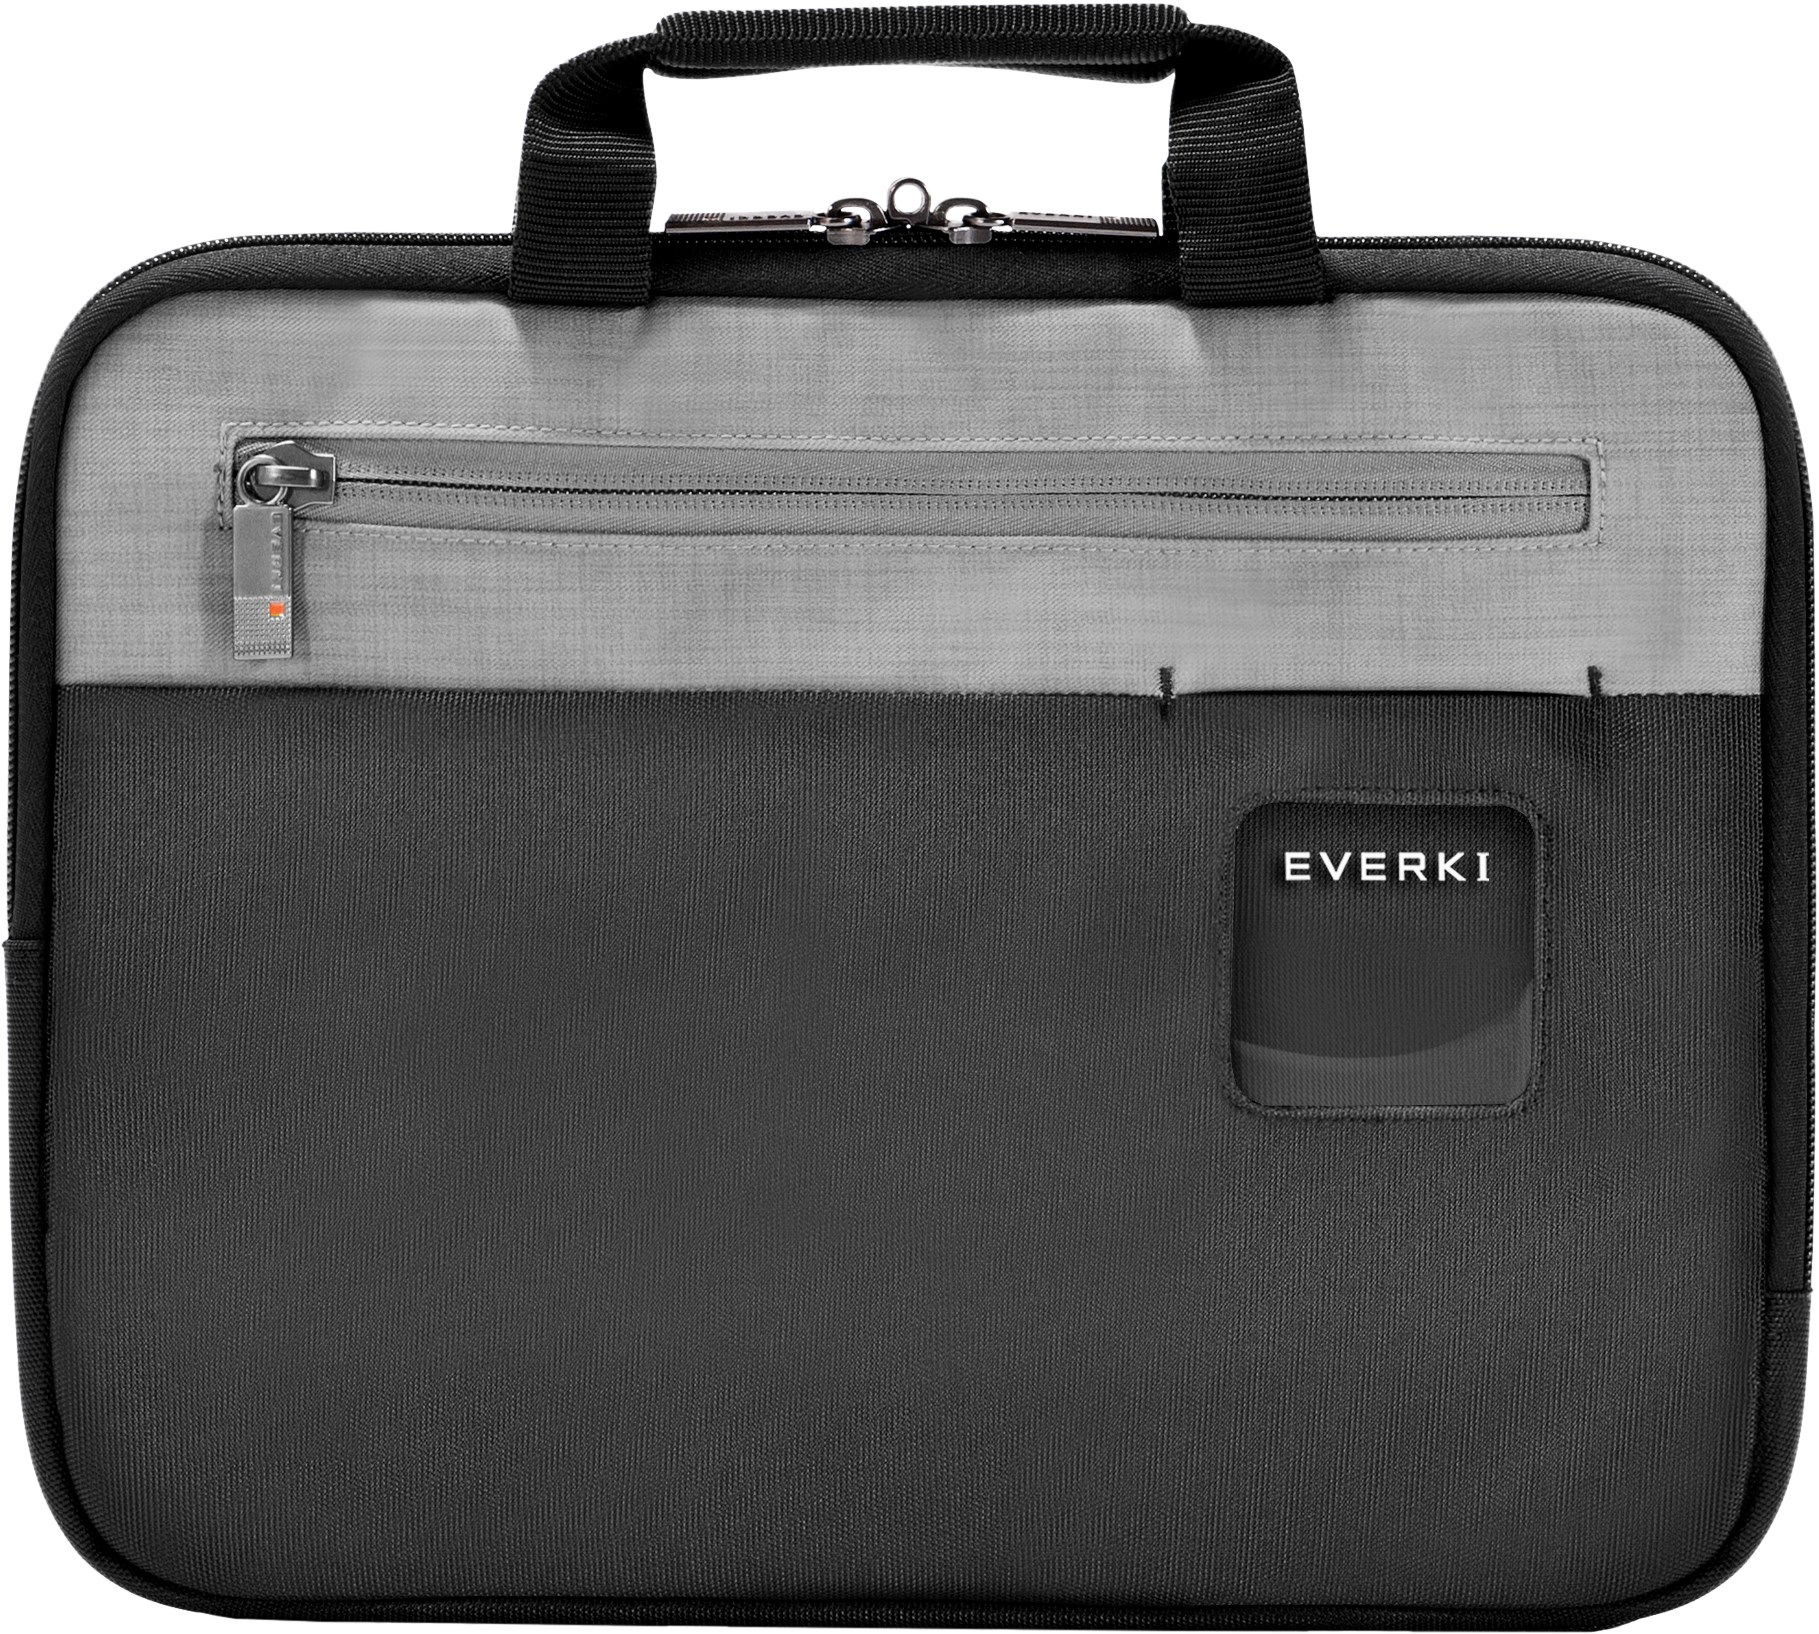 "Torba do laptopa EVERKI ContemPRO Sleeve 13,3"" czarna"